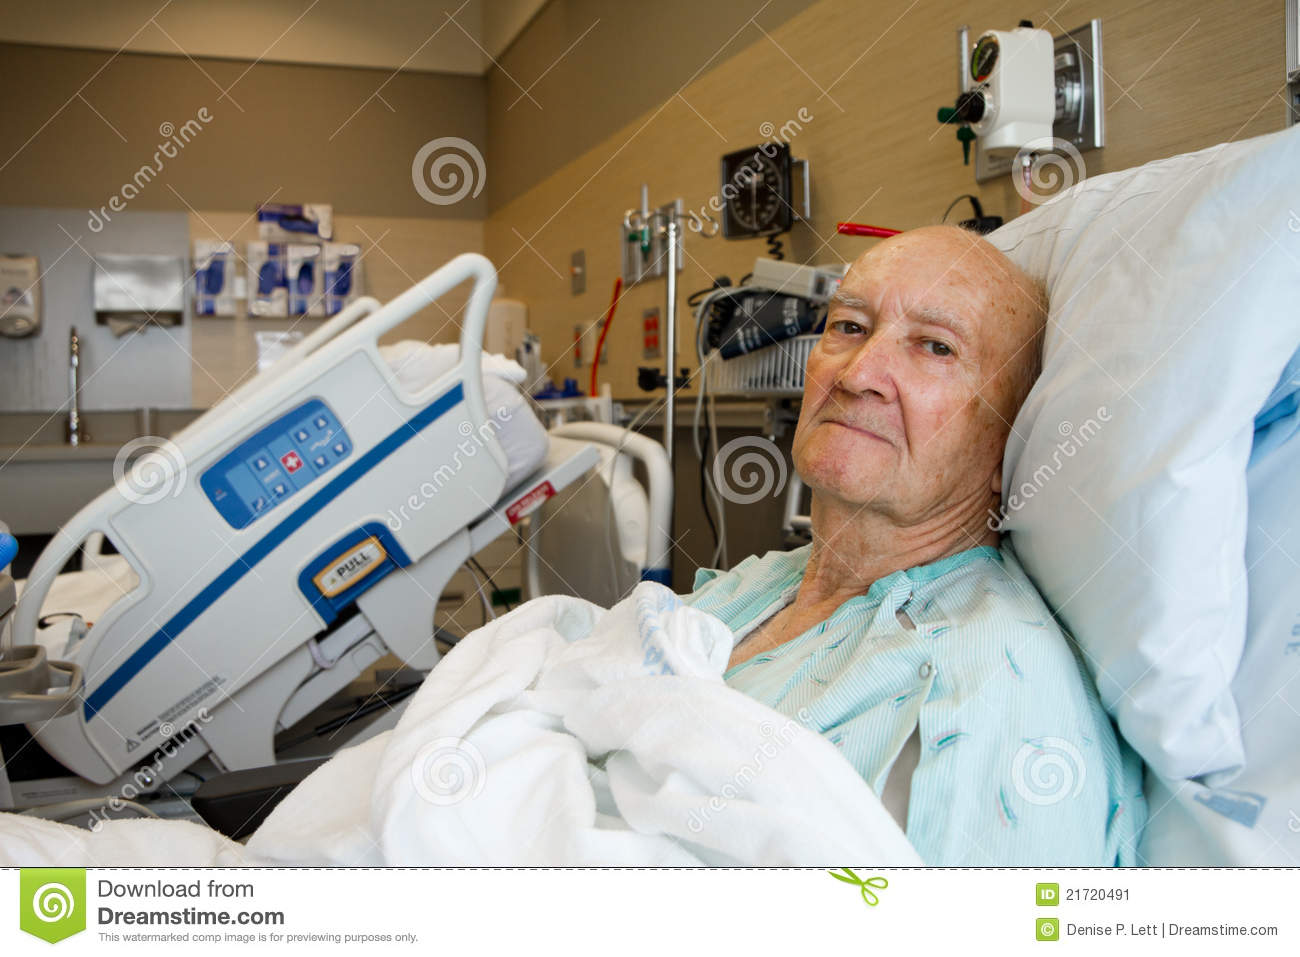 Patient In Hospital Pic : white male patient sitting up in a very modern hospital room. Hospital ...